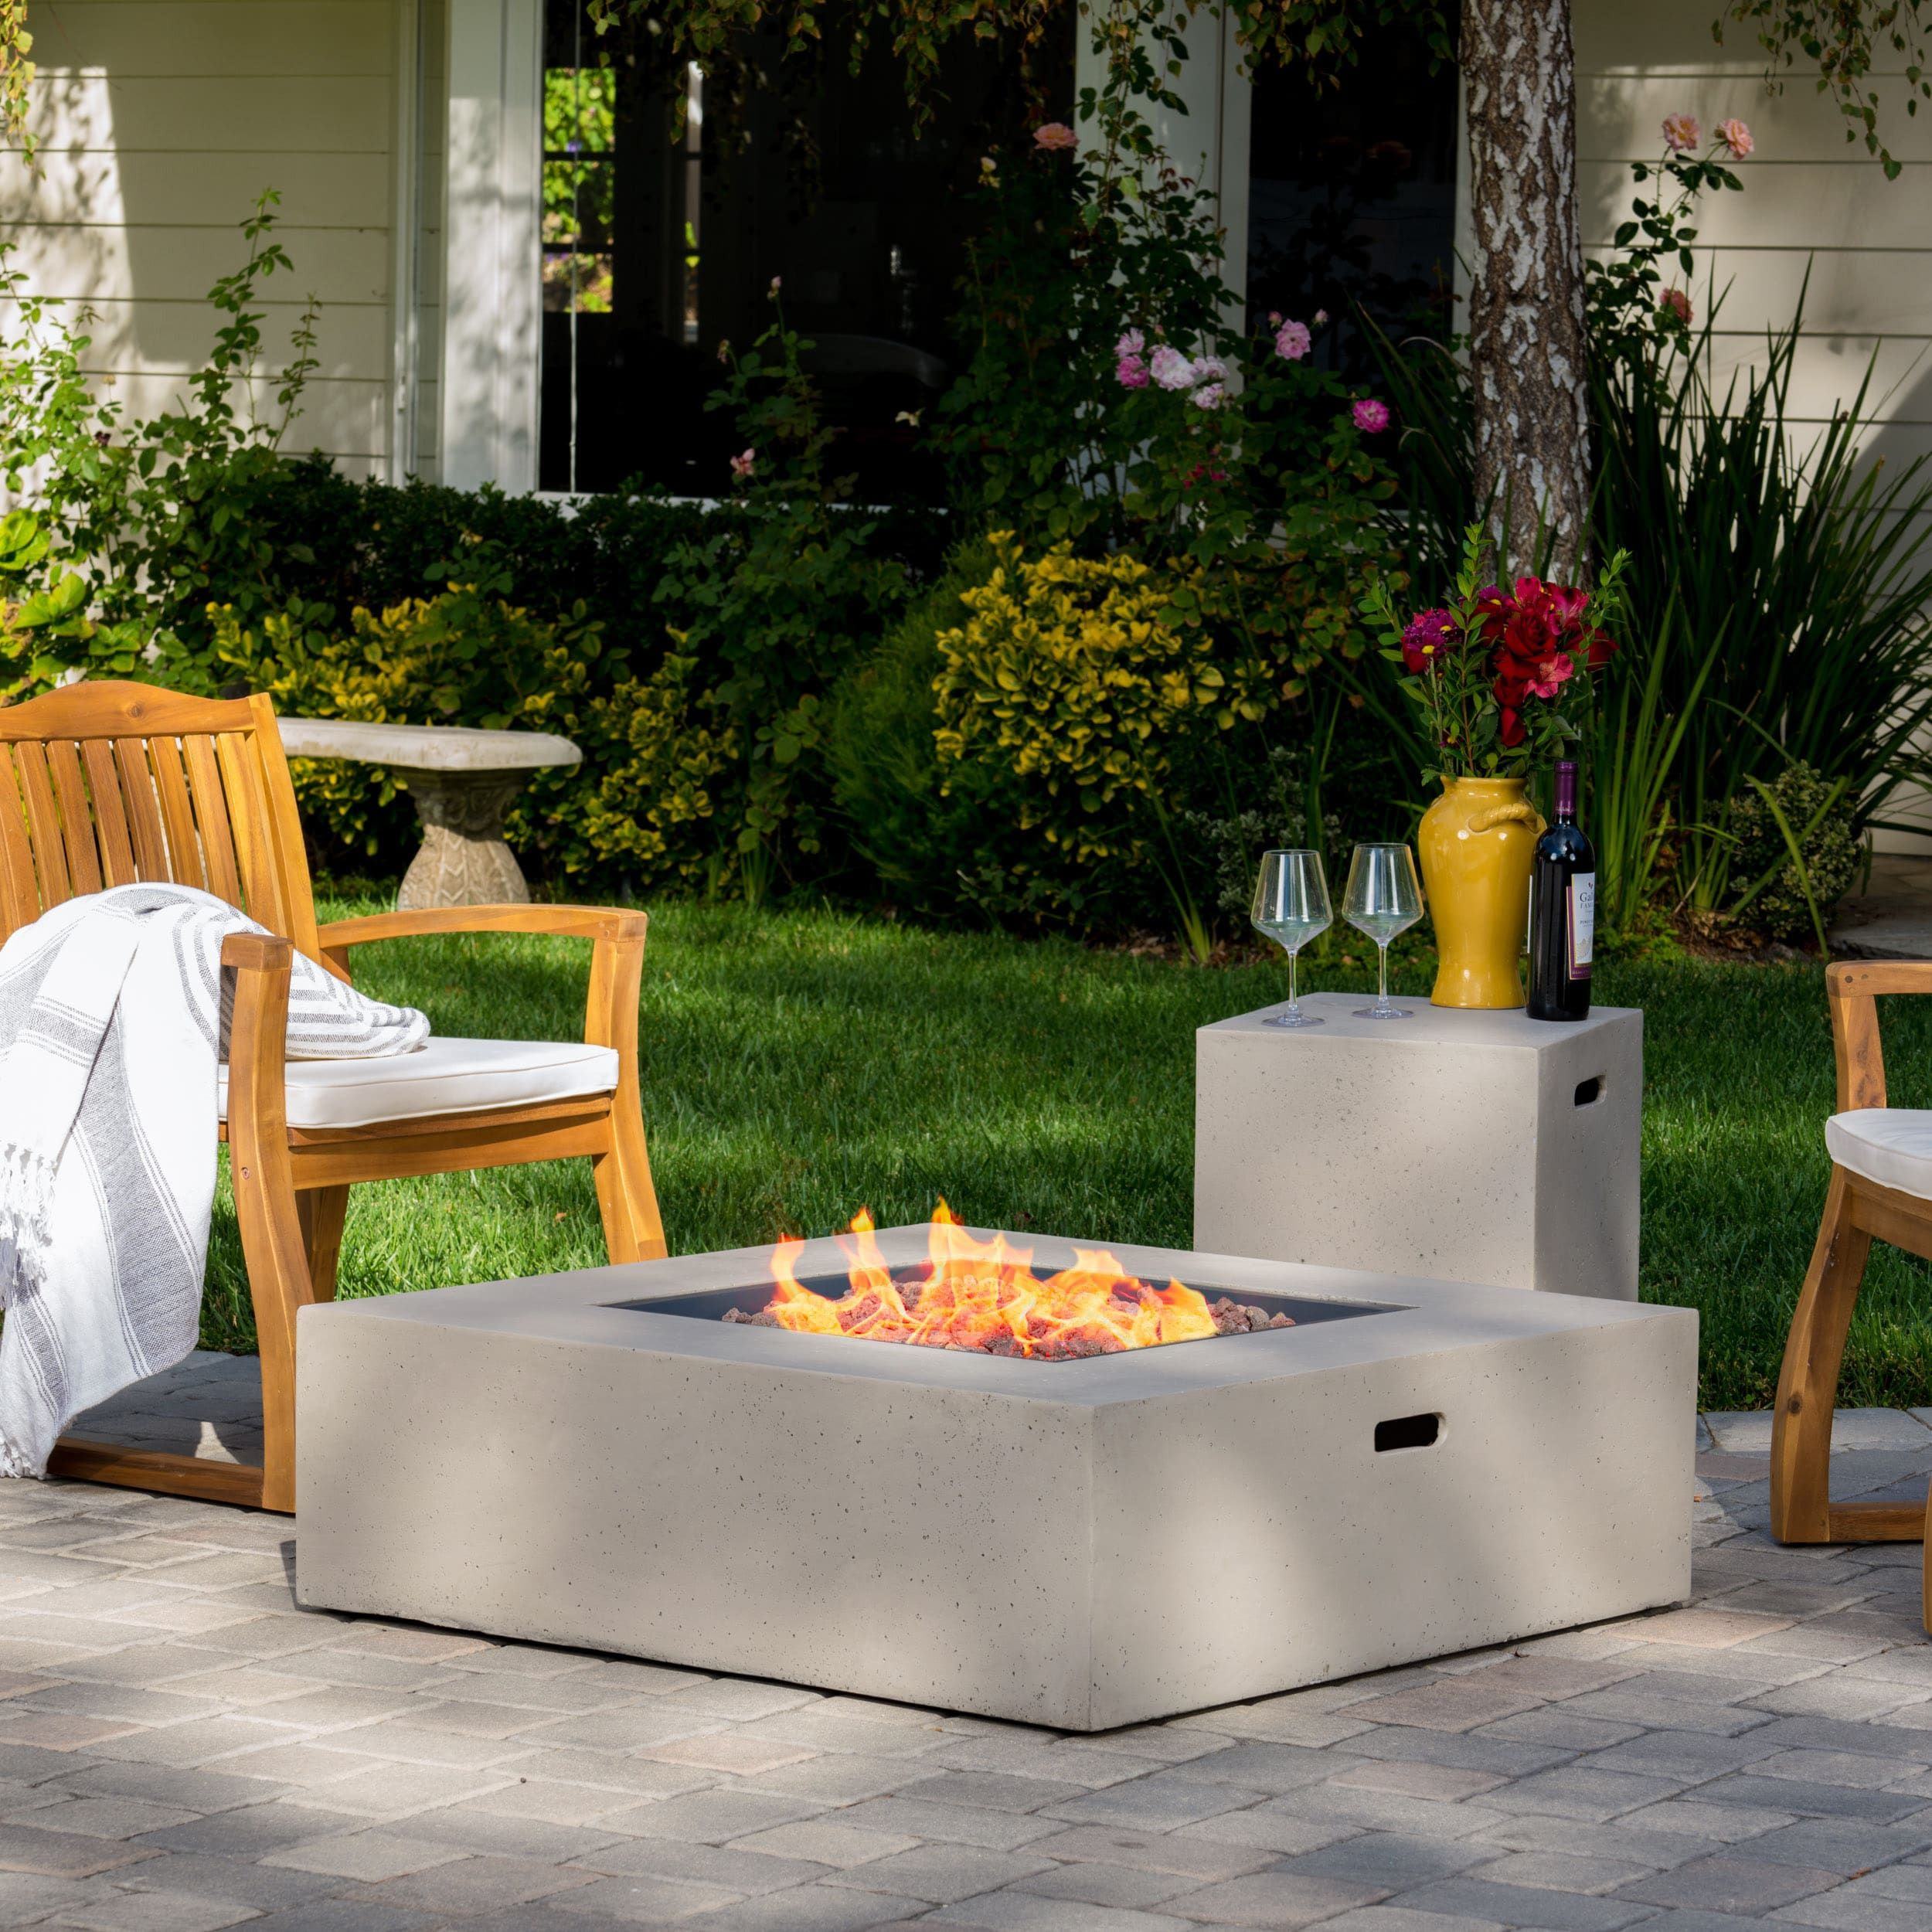 Santos Outdoor 40inch Square Propane Fire Pit Table w